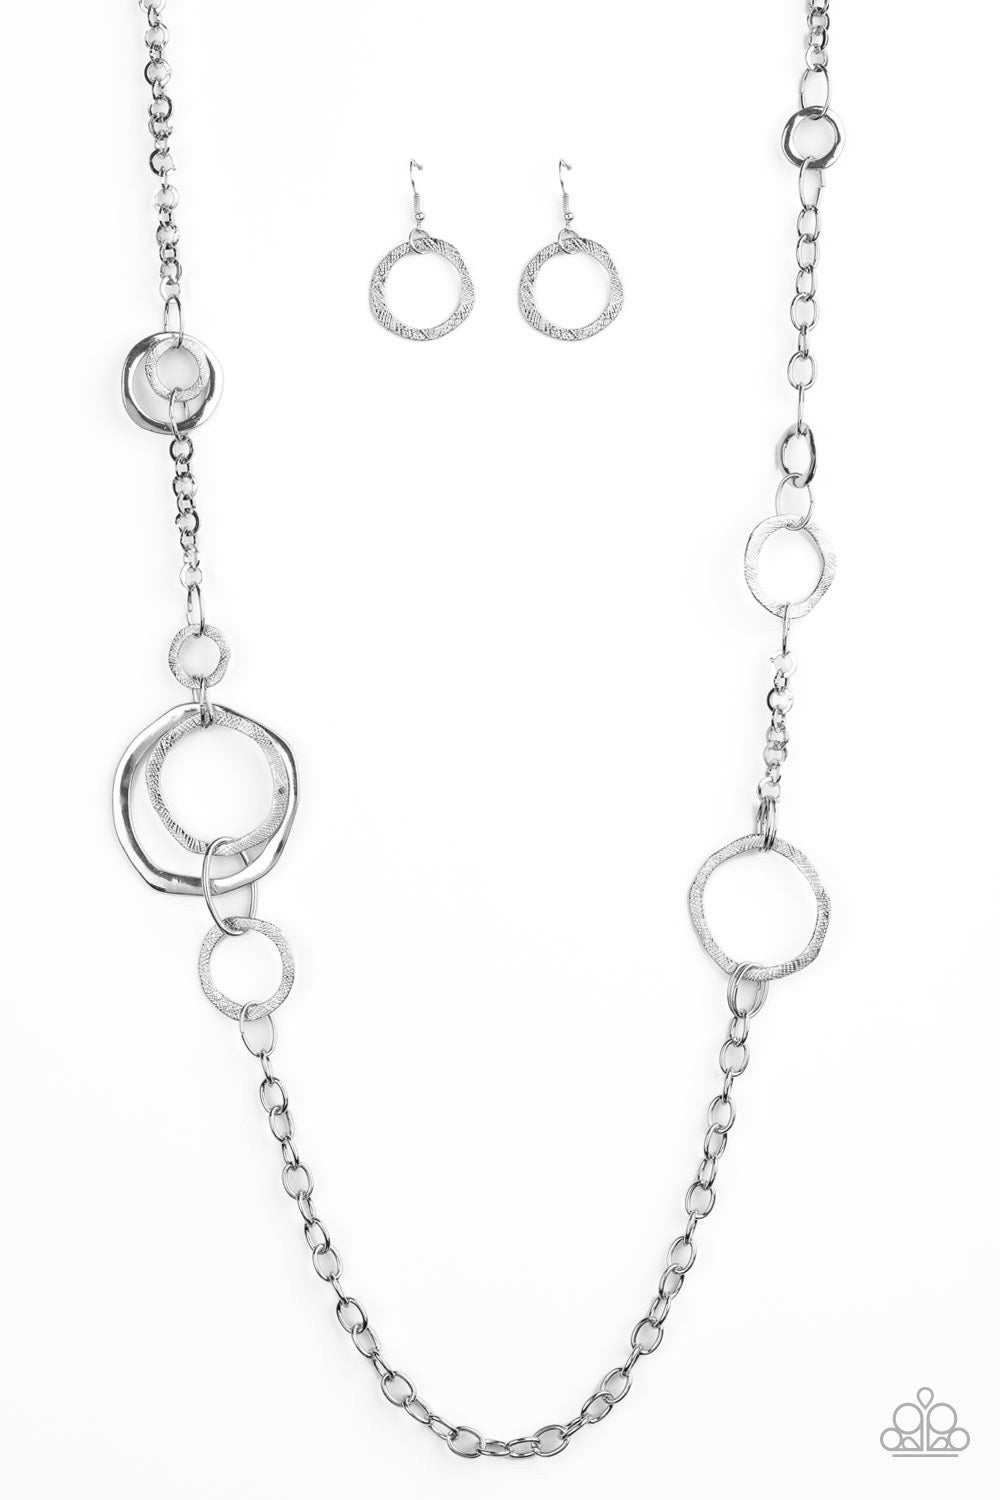 Amped Up Metallics Silver Necklace